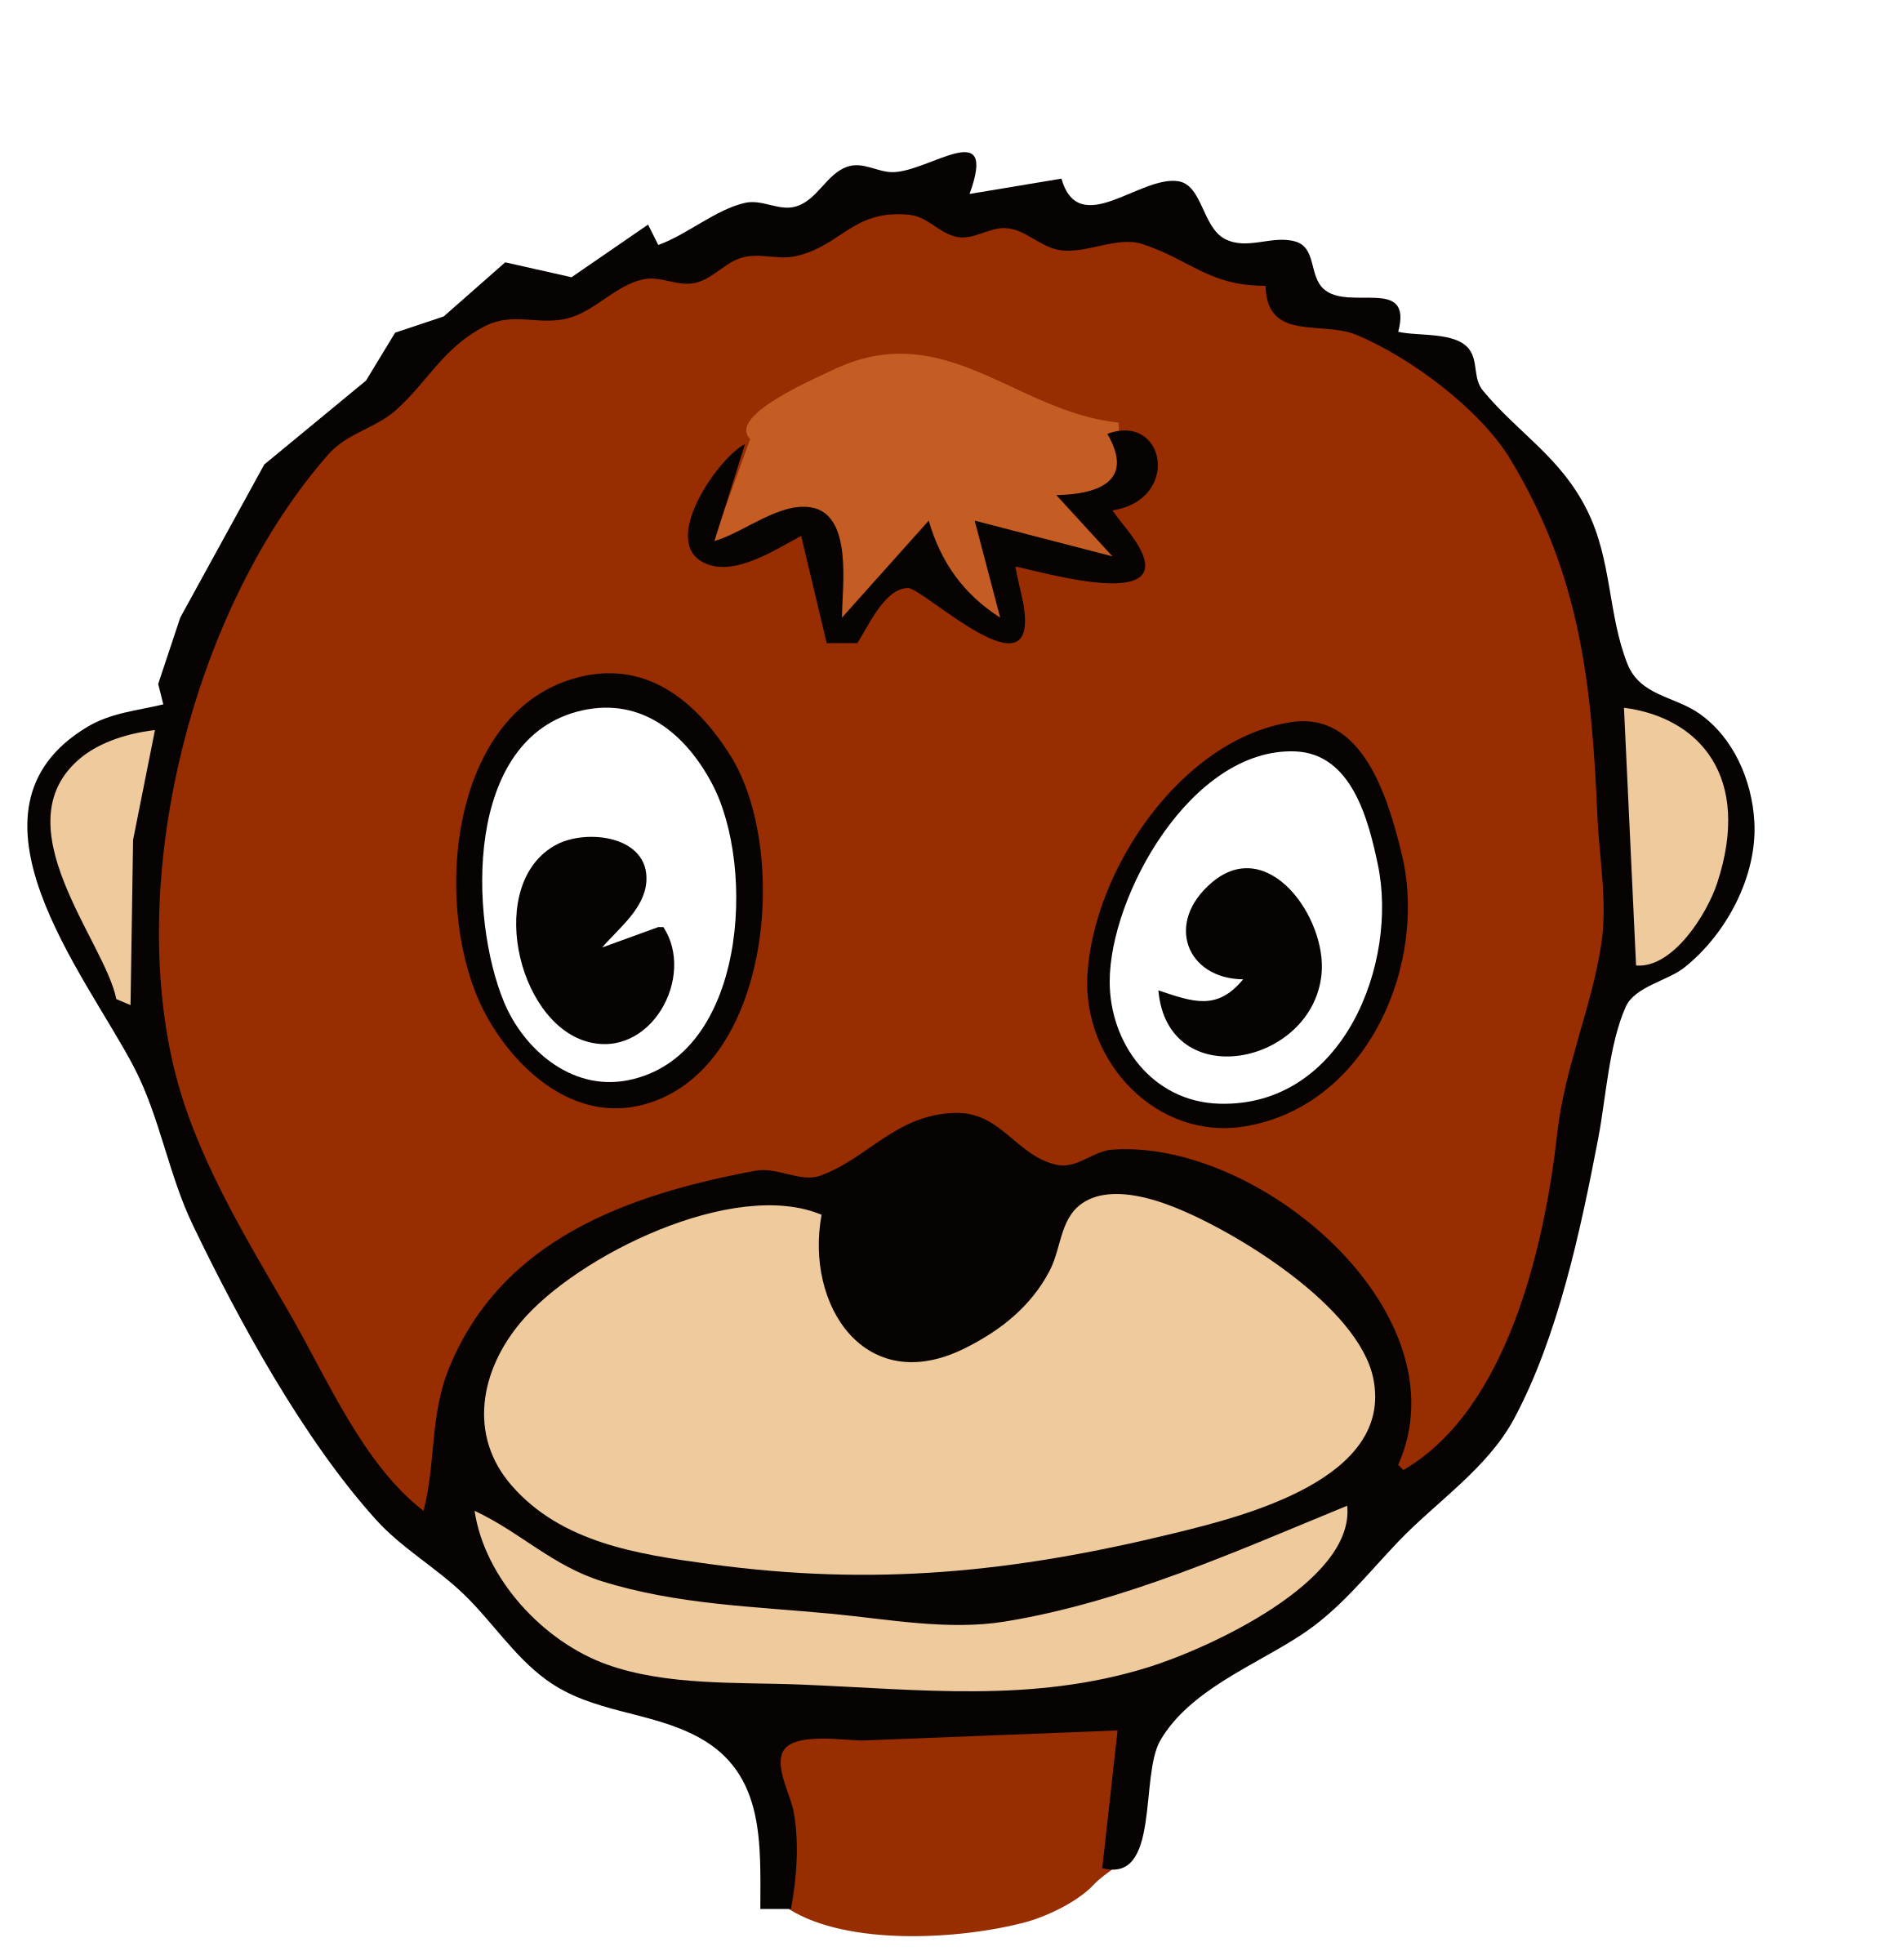 drawn monkey by frankes